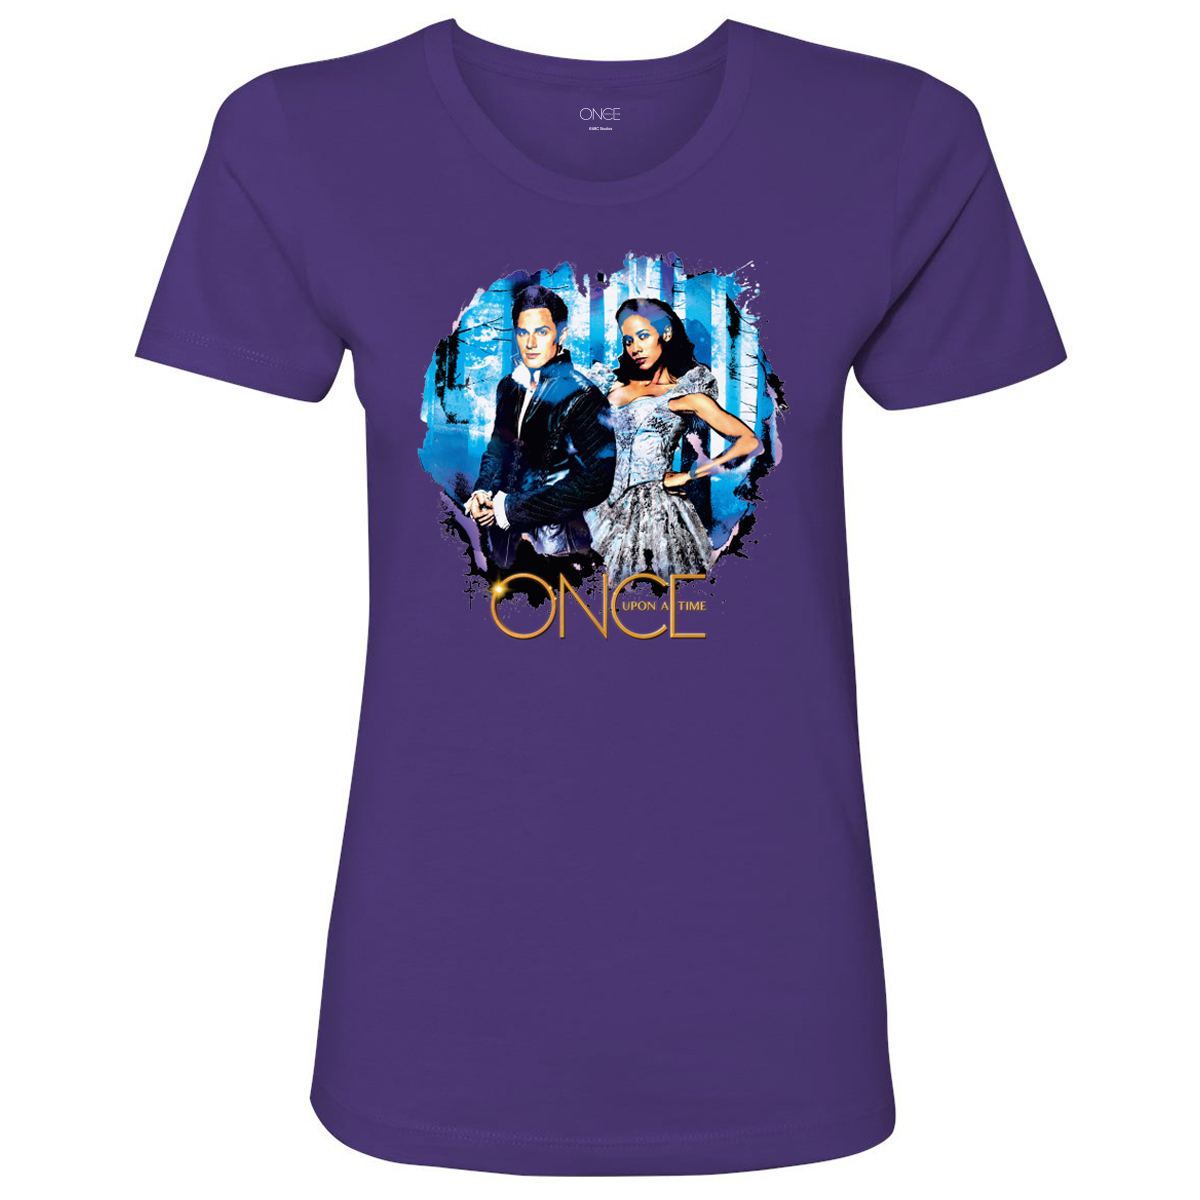 Once Upon A Time Cinderella & Prince Charming Women's T-Shirt